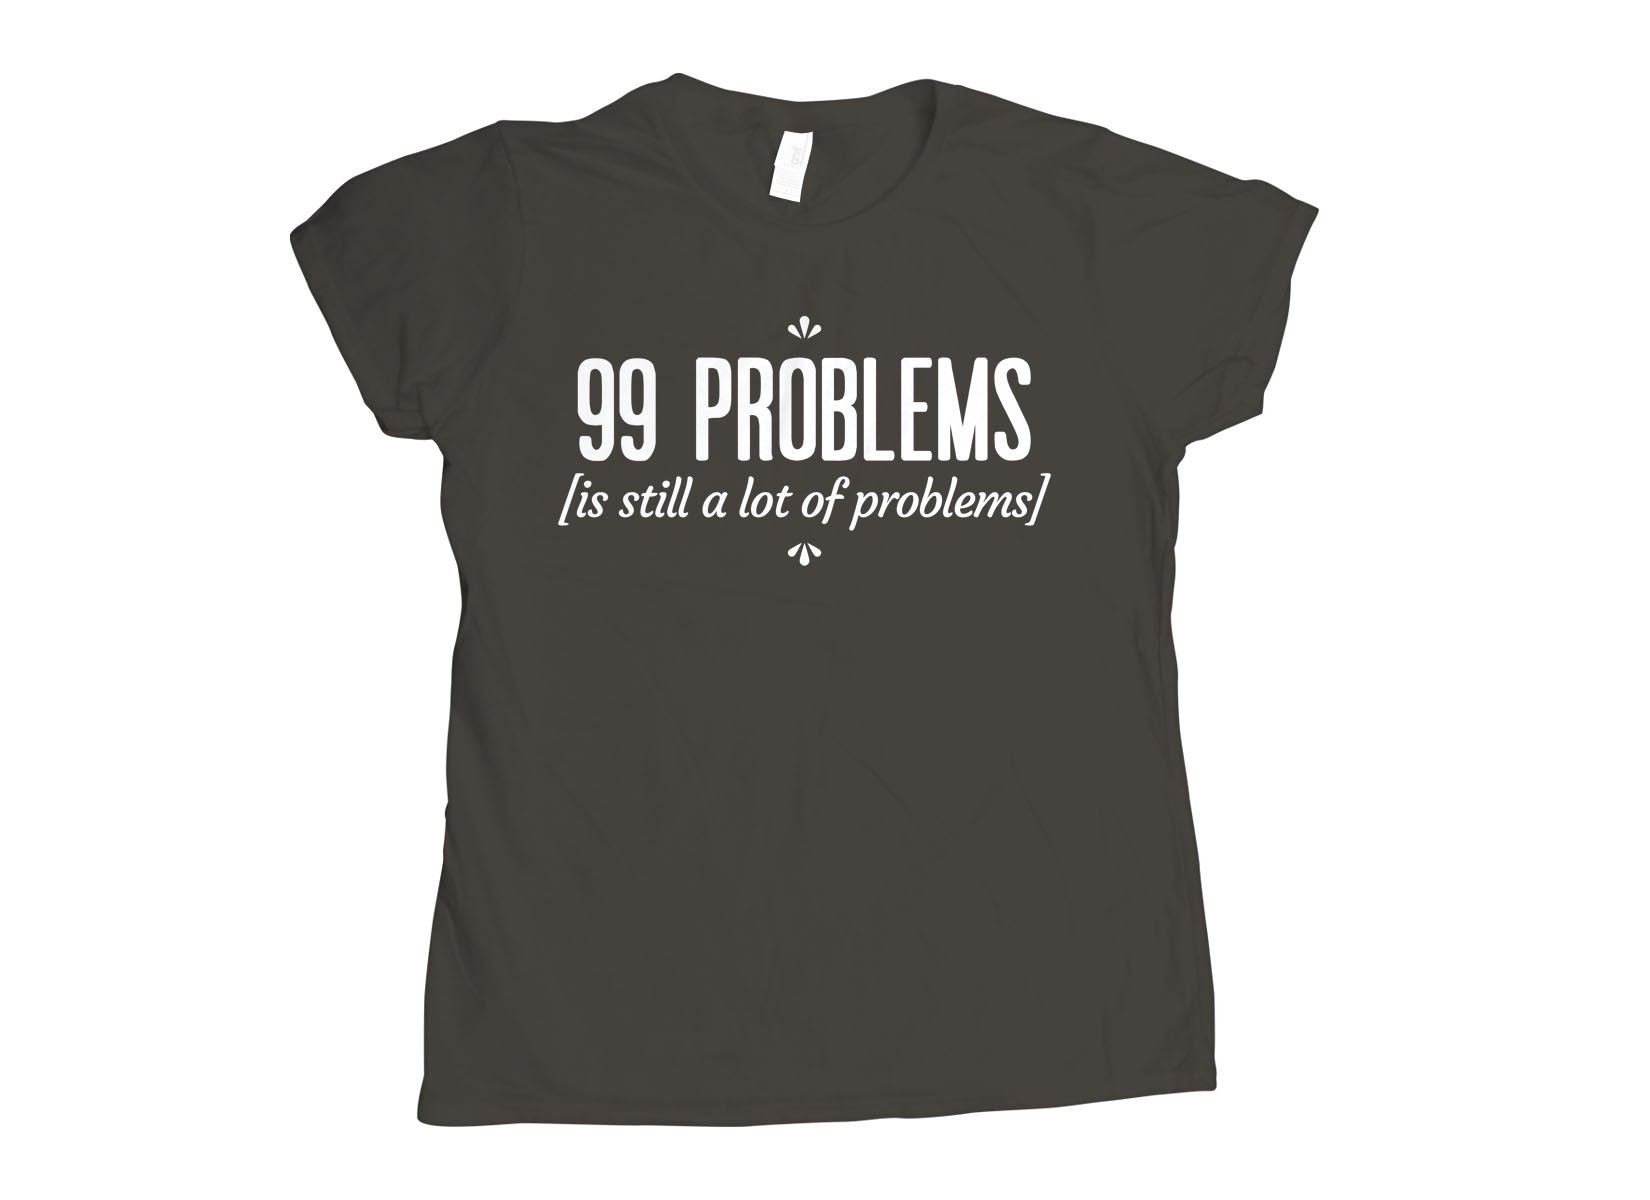 99 Problems Is Still A Lot Of Problems on Womens T-Shirt